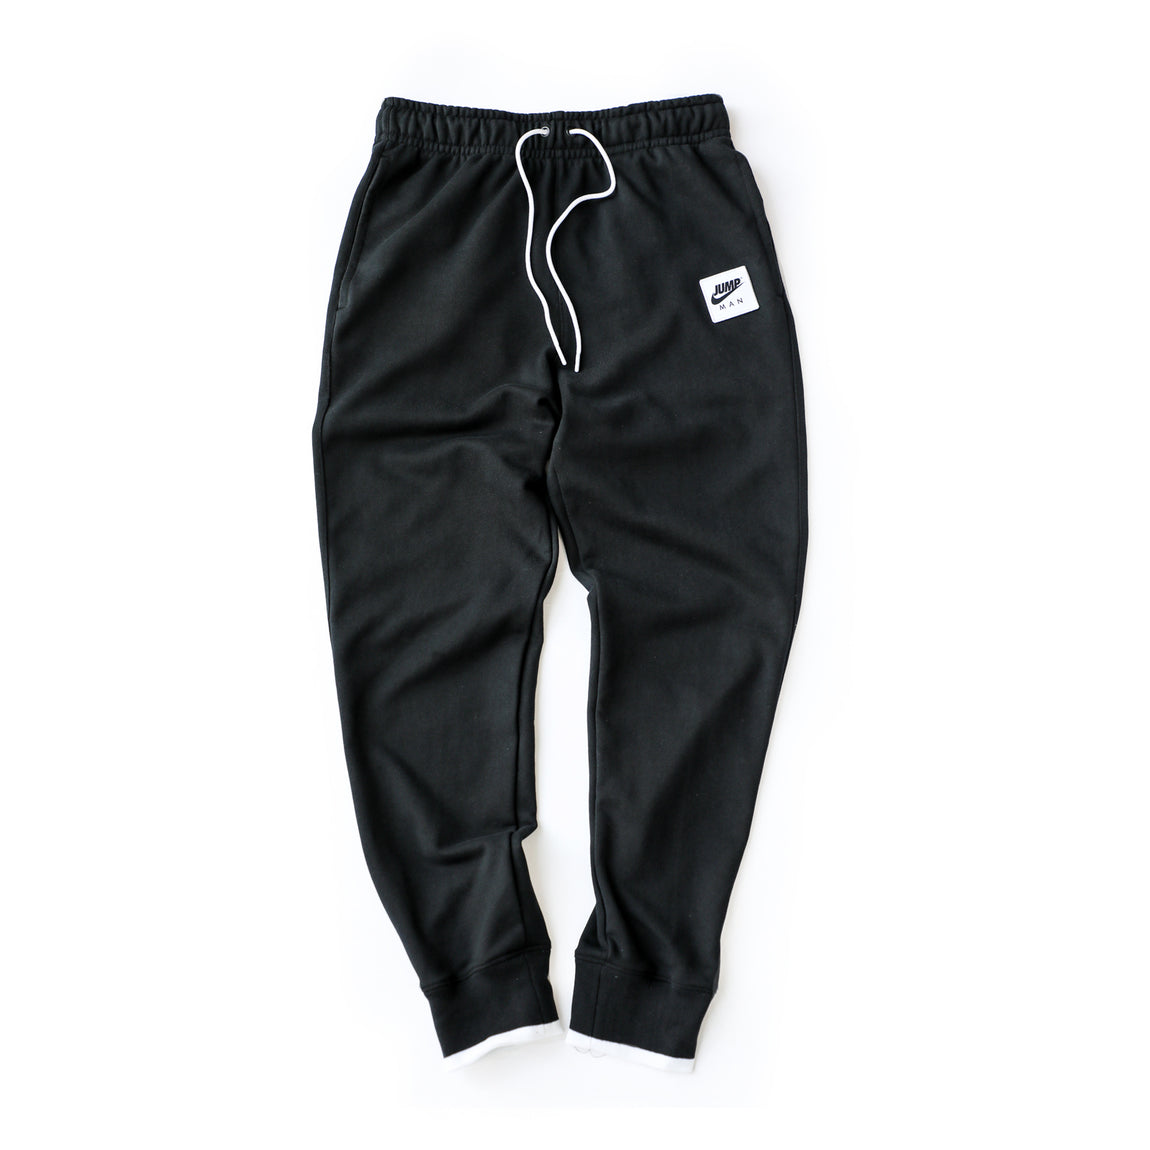 Jordan Jumpman Classics Fleece Pants (Black/White) - Jordan Jumpman Classics Fleece Pants (Black/White) -